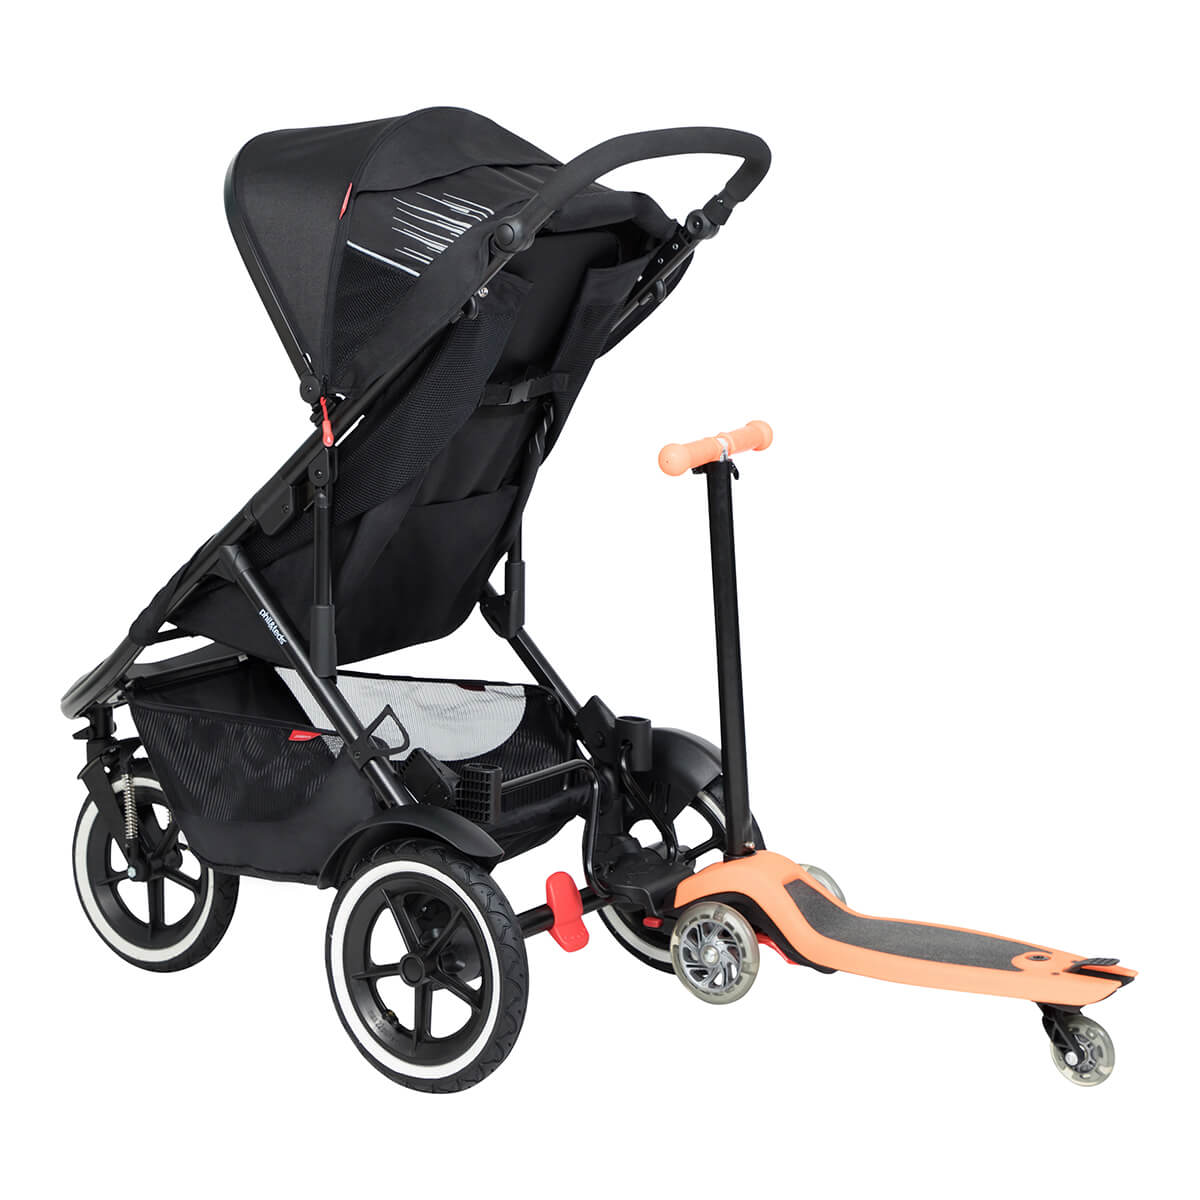 https://cdn.accentuate.io/4509528588376/19272668348504/philteds-sport-poussette-with-freerider-stroller-board-in-rear-v1626484500607.jpg?1200x1200